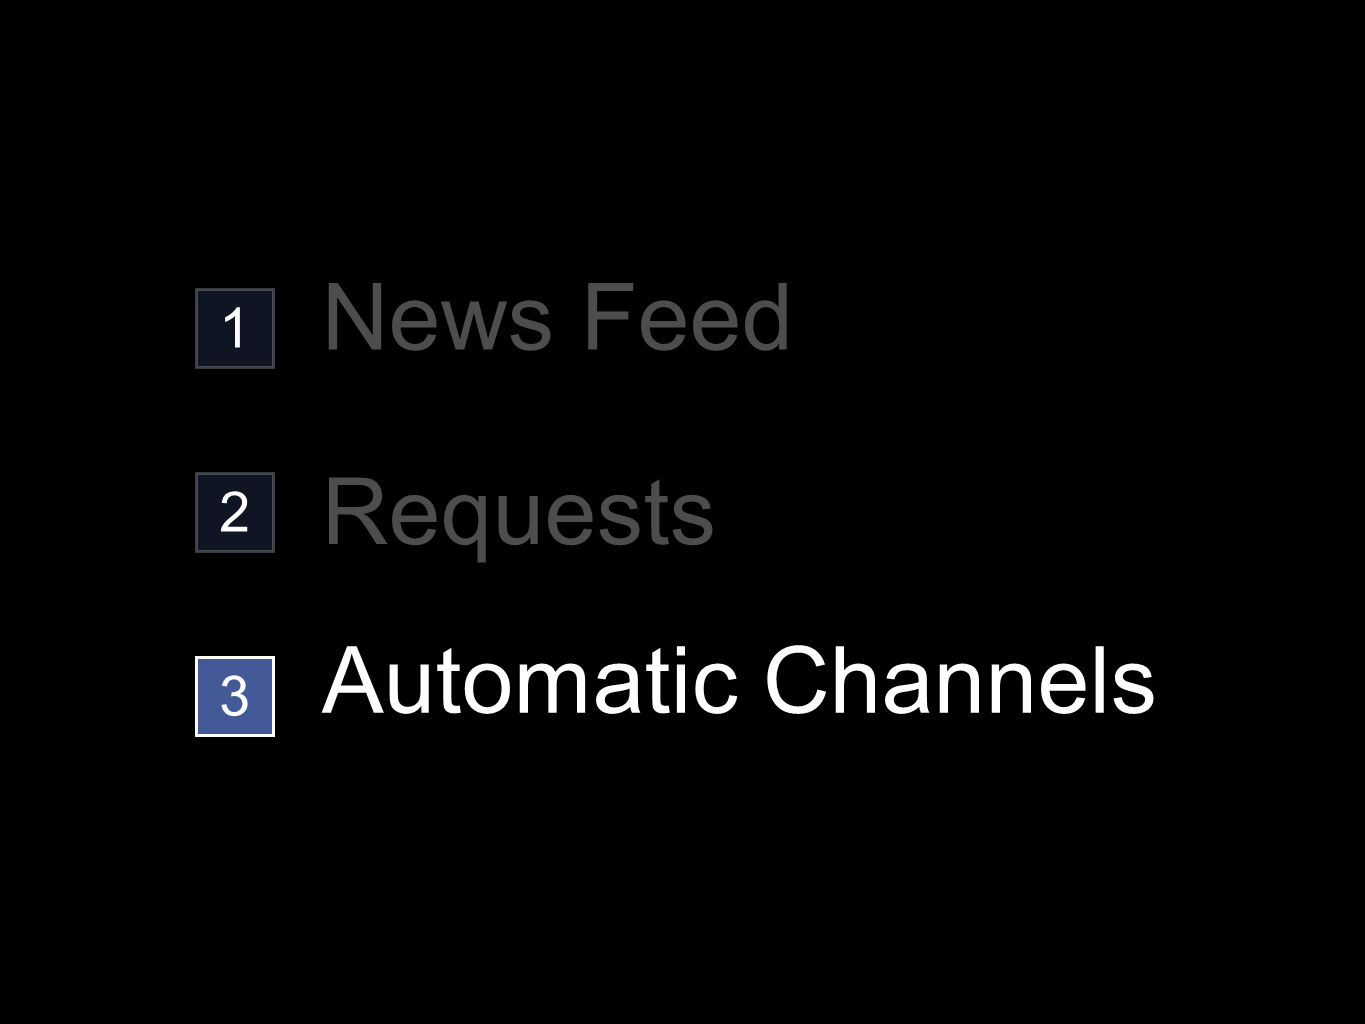 1 2 3 News Feed Requests Automatic Channels